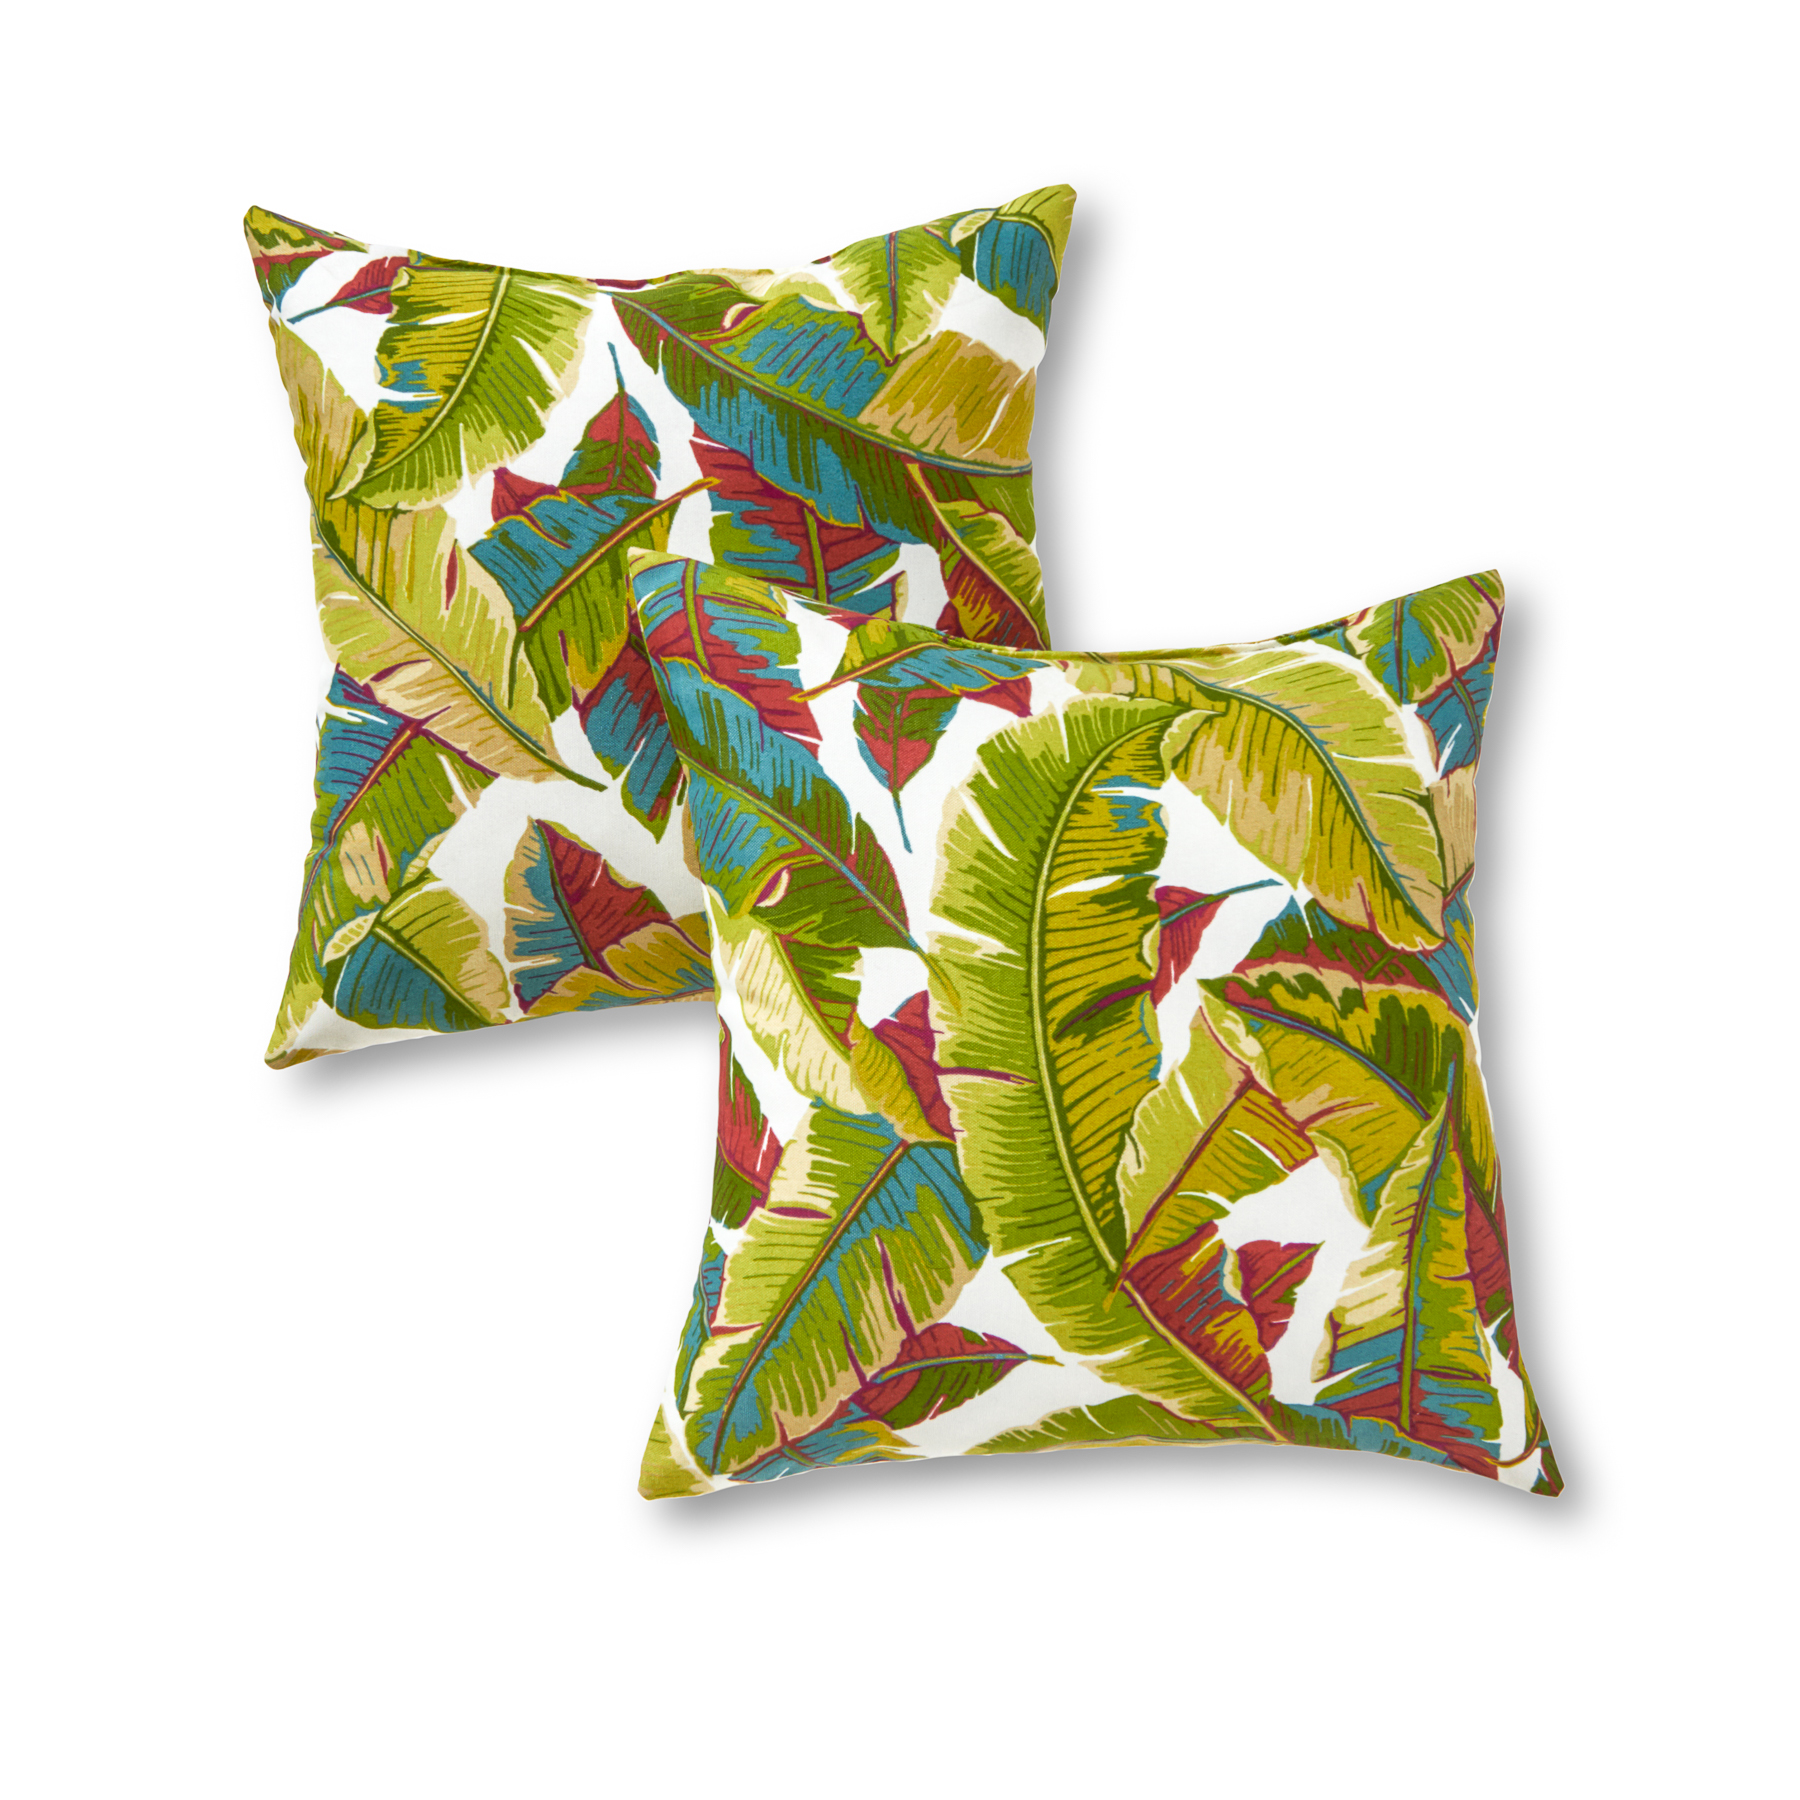 Greendale Home Fashions Palm Leaves Outdoor Accent Pillow, Set of 2